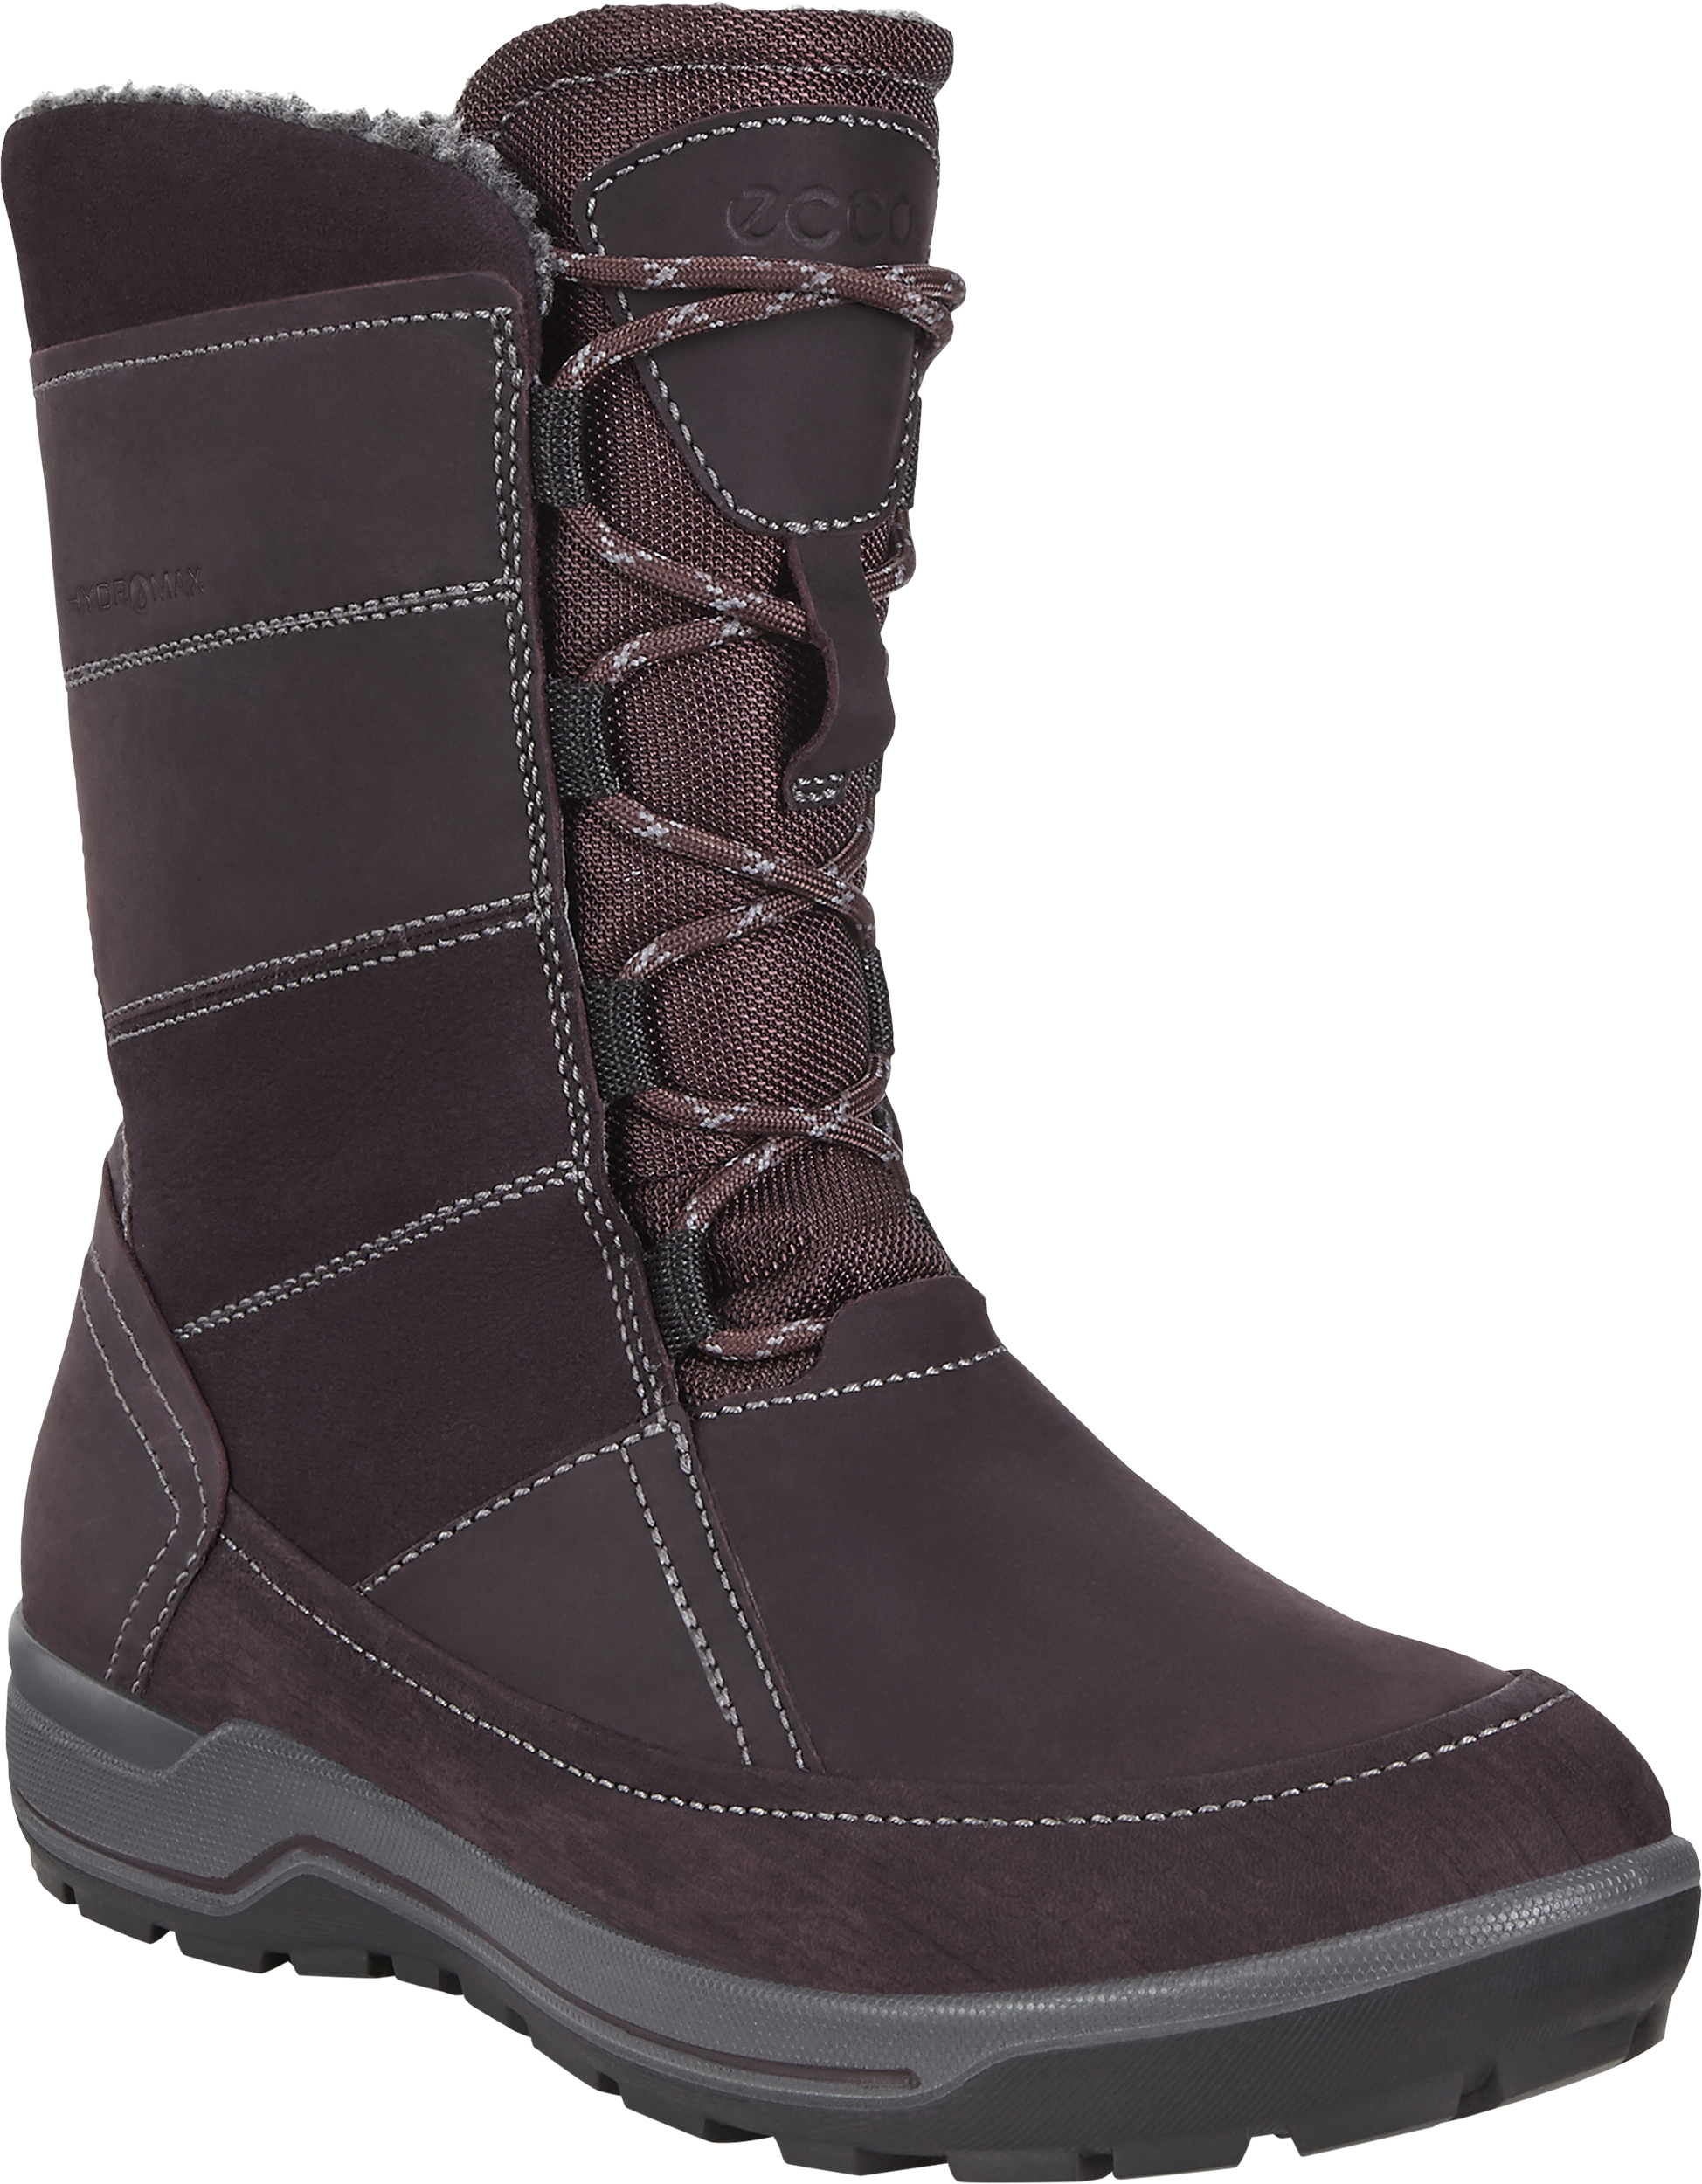 ecco winter boots review